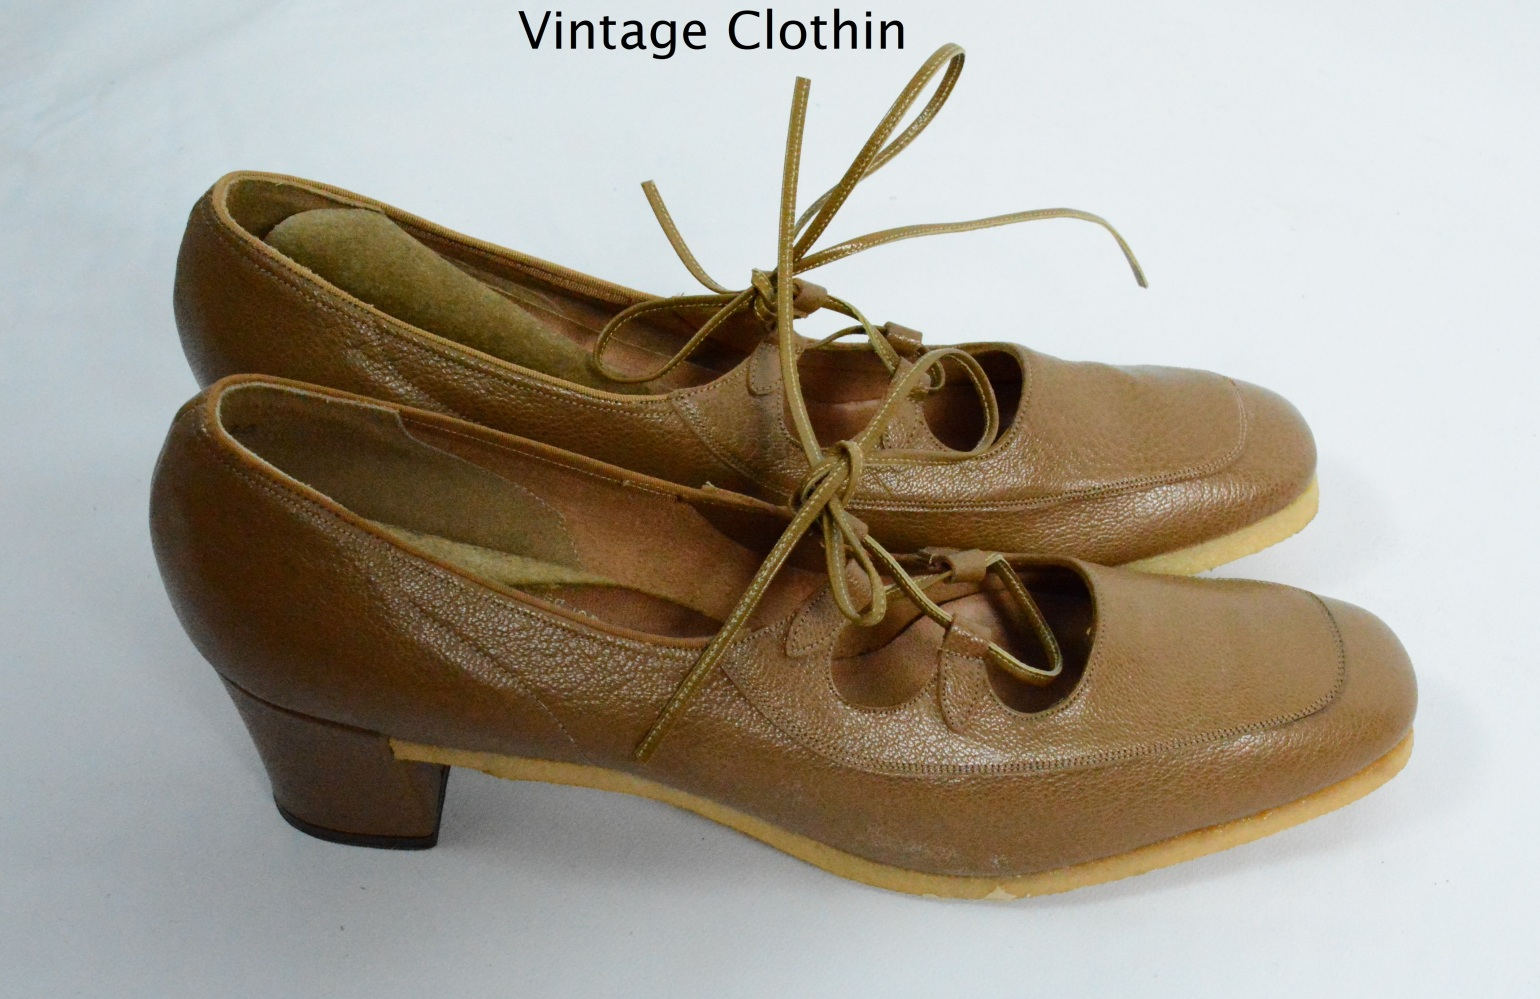 1974 Mark Tavenner / L E Massey Tan Lace up Pumps with Crepe Sole